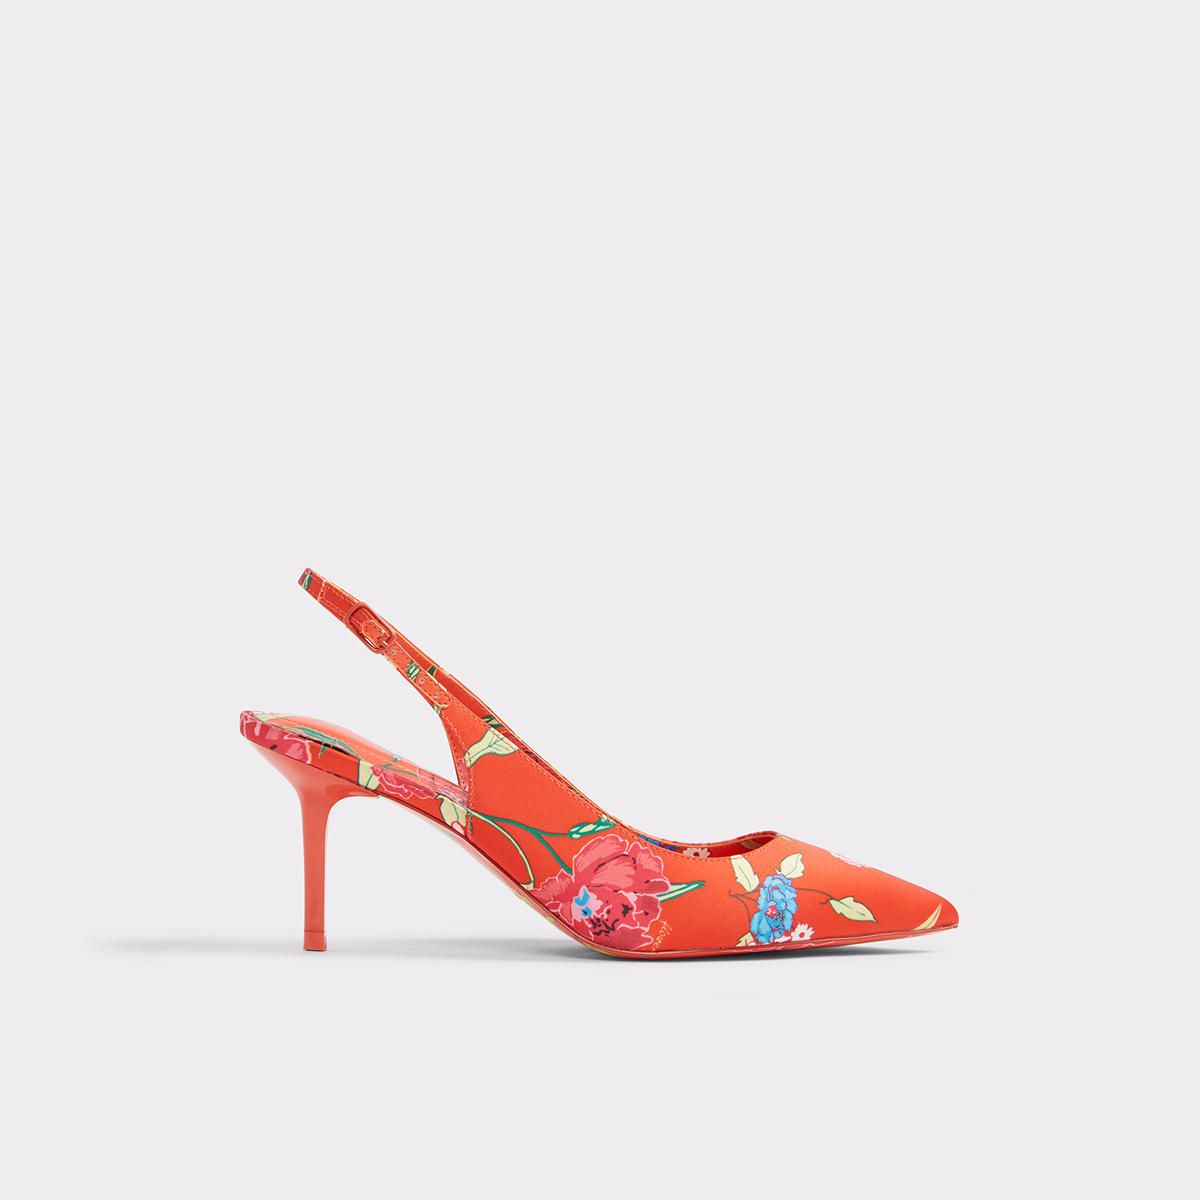 c15e9925b8 Criewiel Perfect for right me-ow and later, this slingback kitten heel  transcends the seasons with wear-everywhere wear.